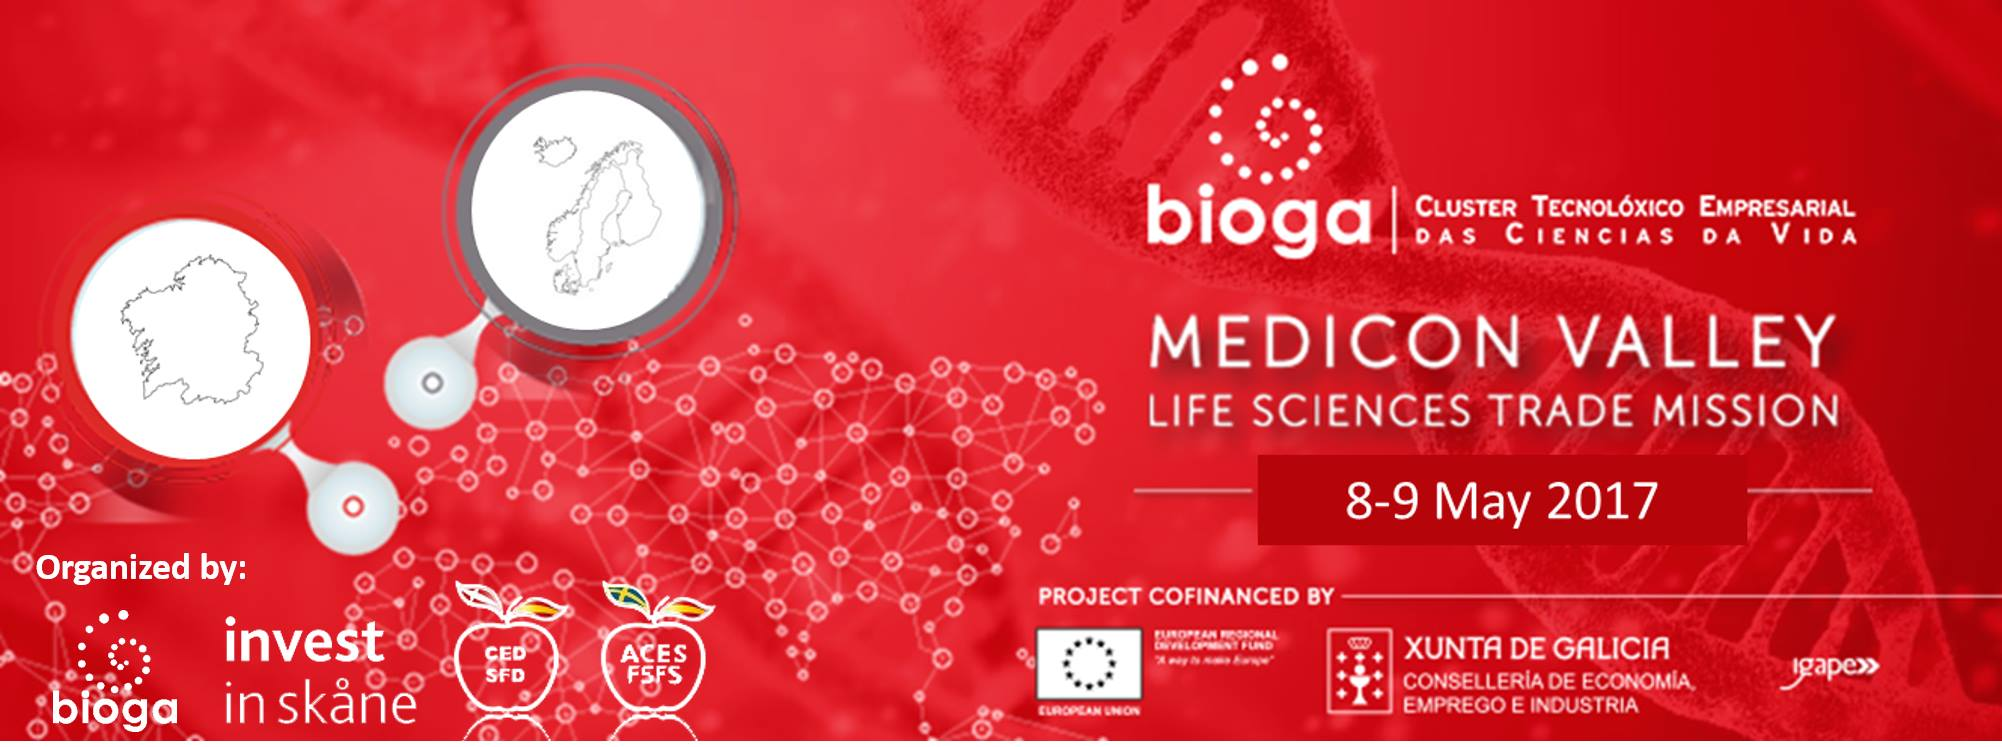 Galchimia participes in a trade mission to Denmark with Bioga